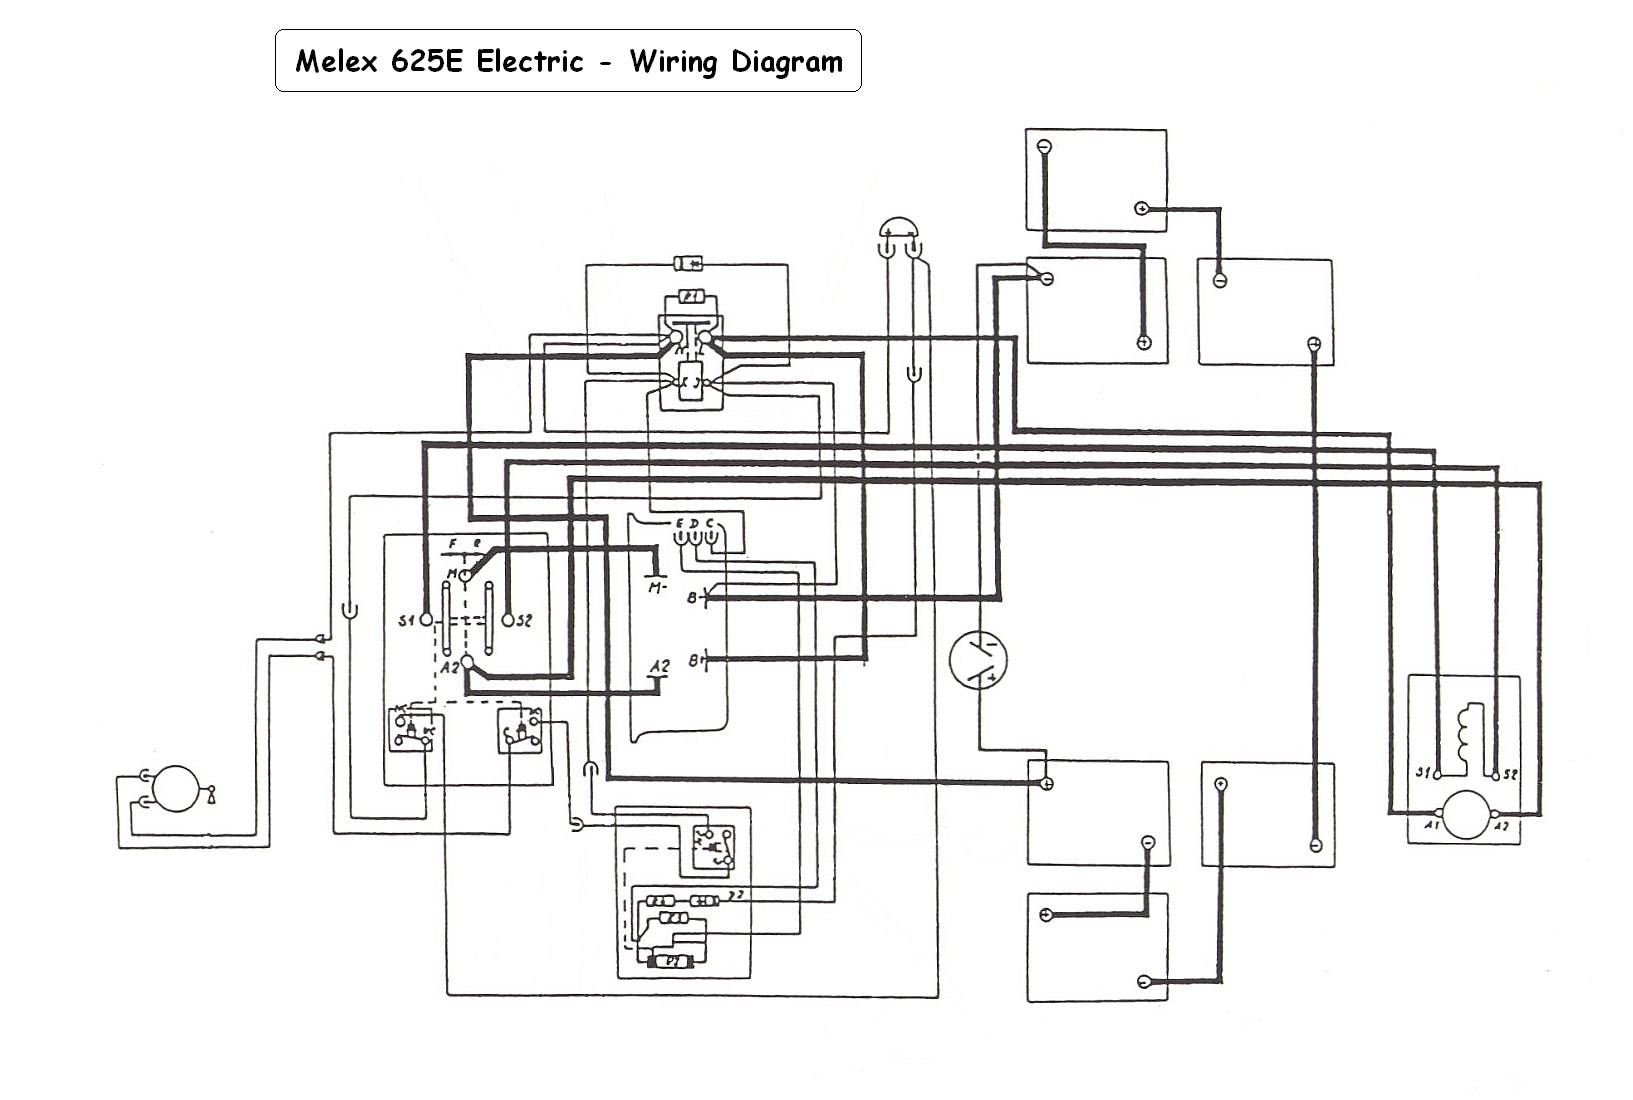 small resolution of melex 212 light wiring diagram model wiring diagram third levelmelex 212 wiring diagram wiring diagram third